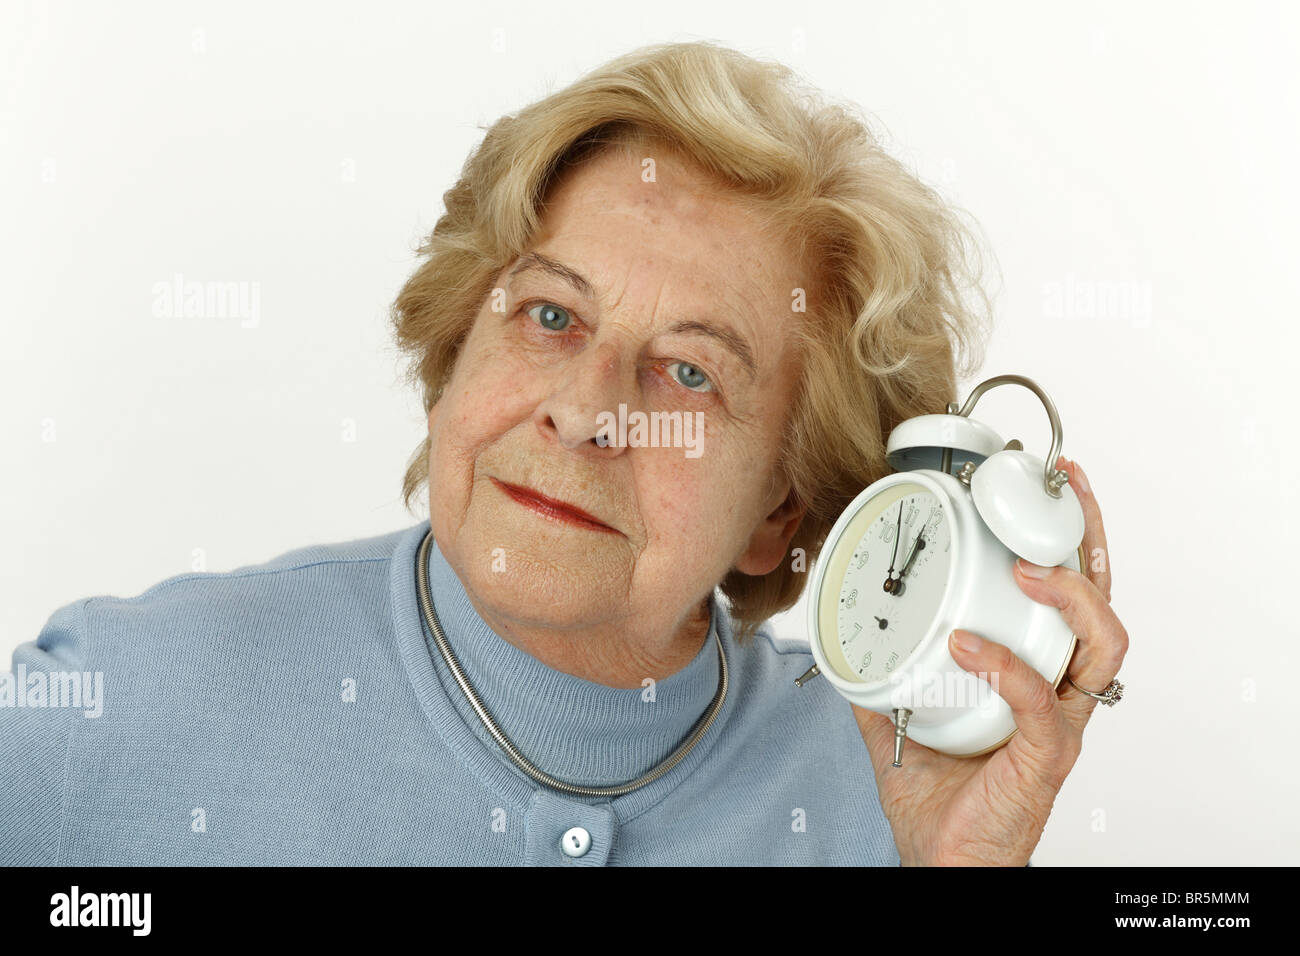 Old woman, 80 years old, holding an alarm clock, 5 to 12 - Stock Image